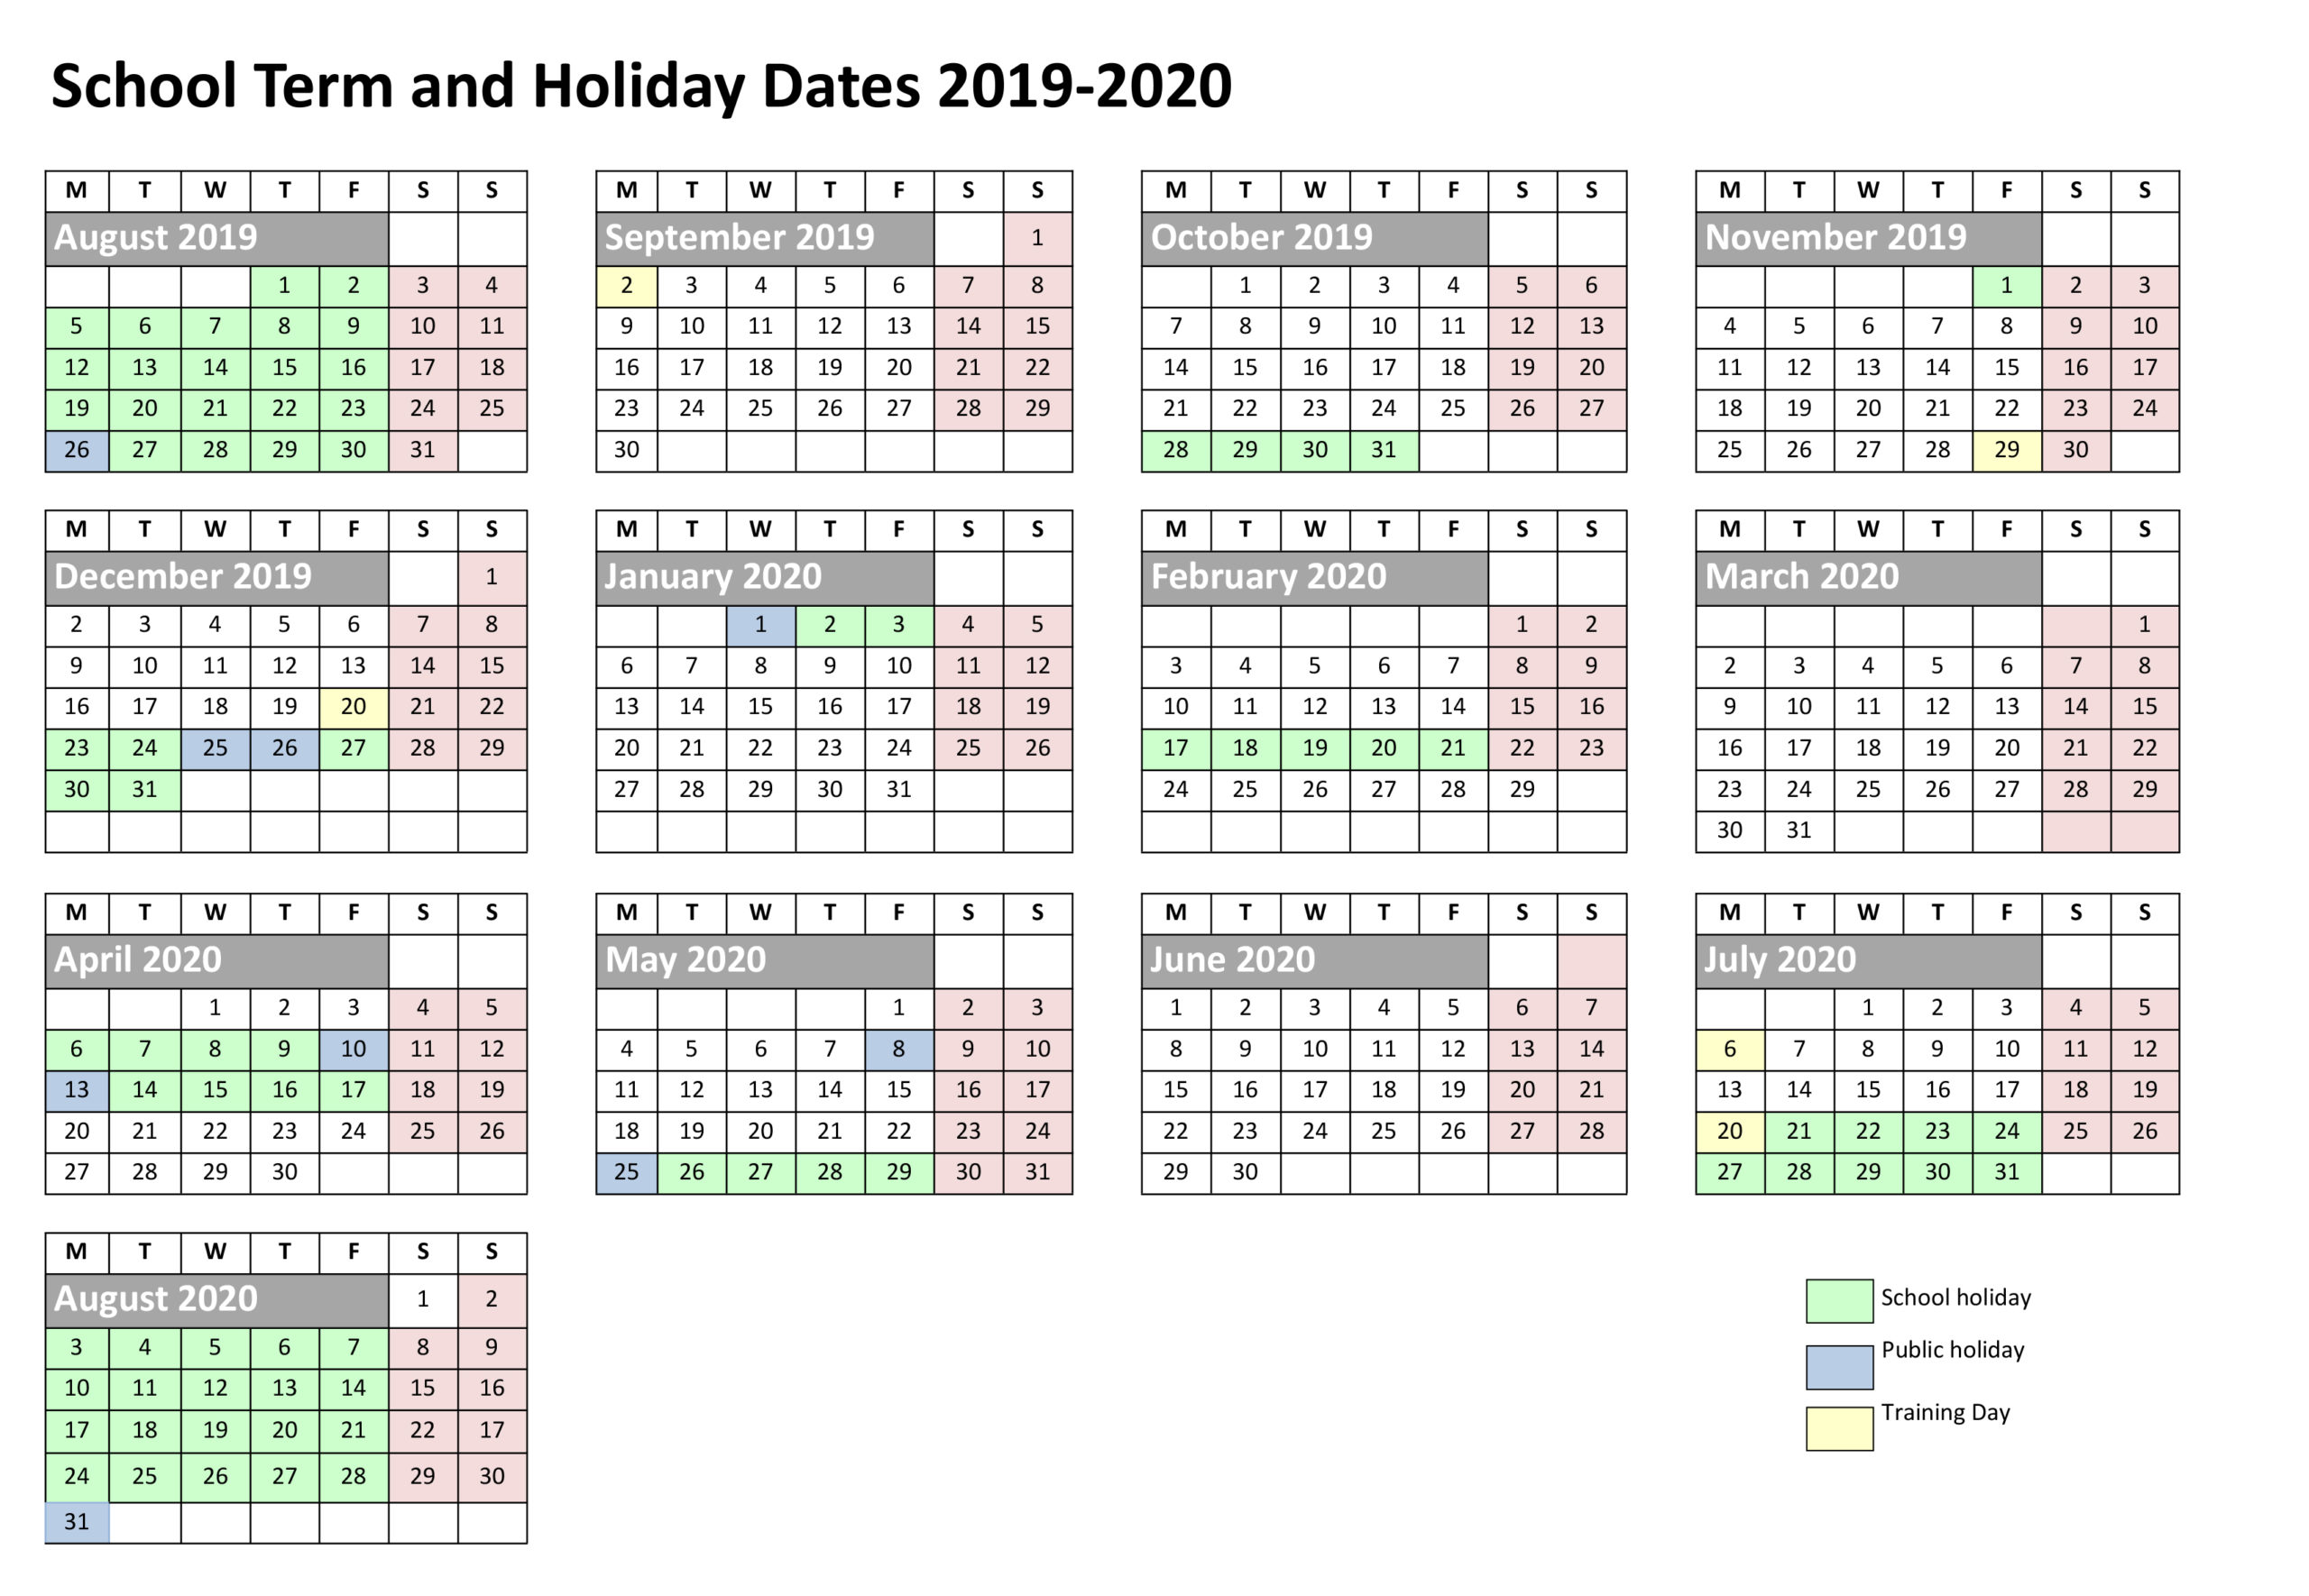 School-Term-Holiday-Dates-2019